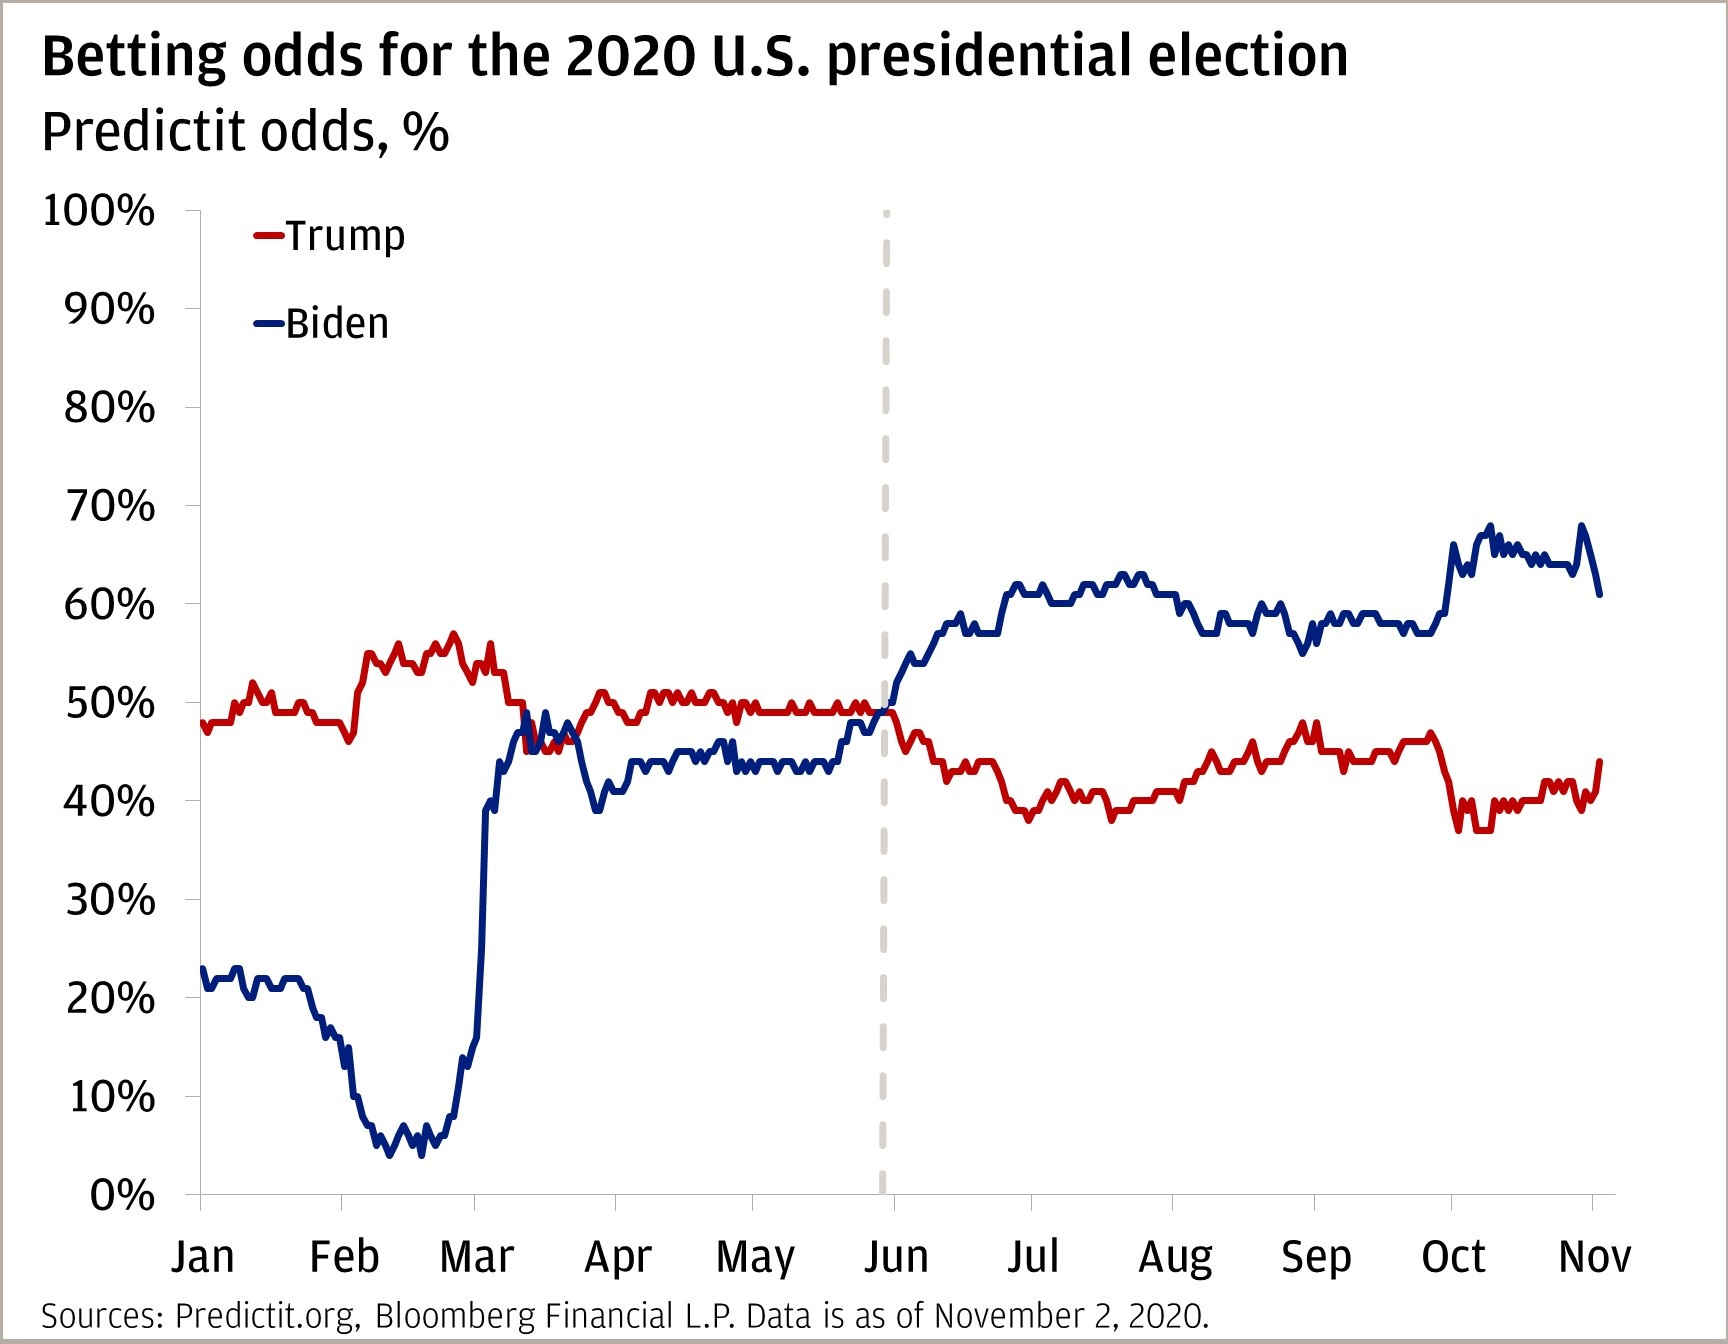 Chart 4: This line chart compares the betting odds for the 2020 U.S. presidential election.